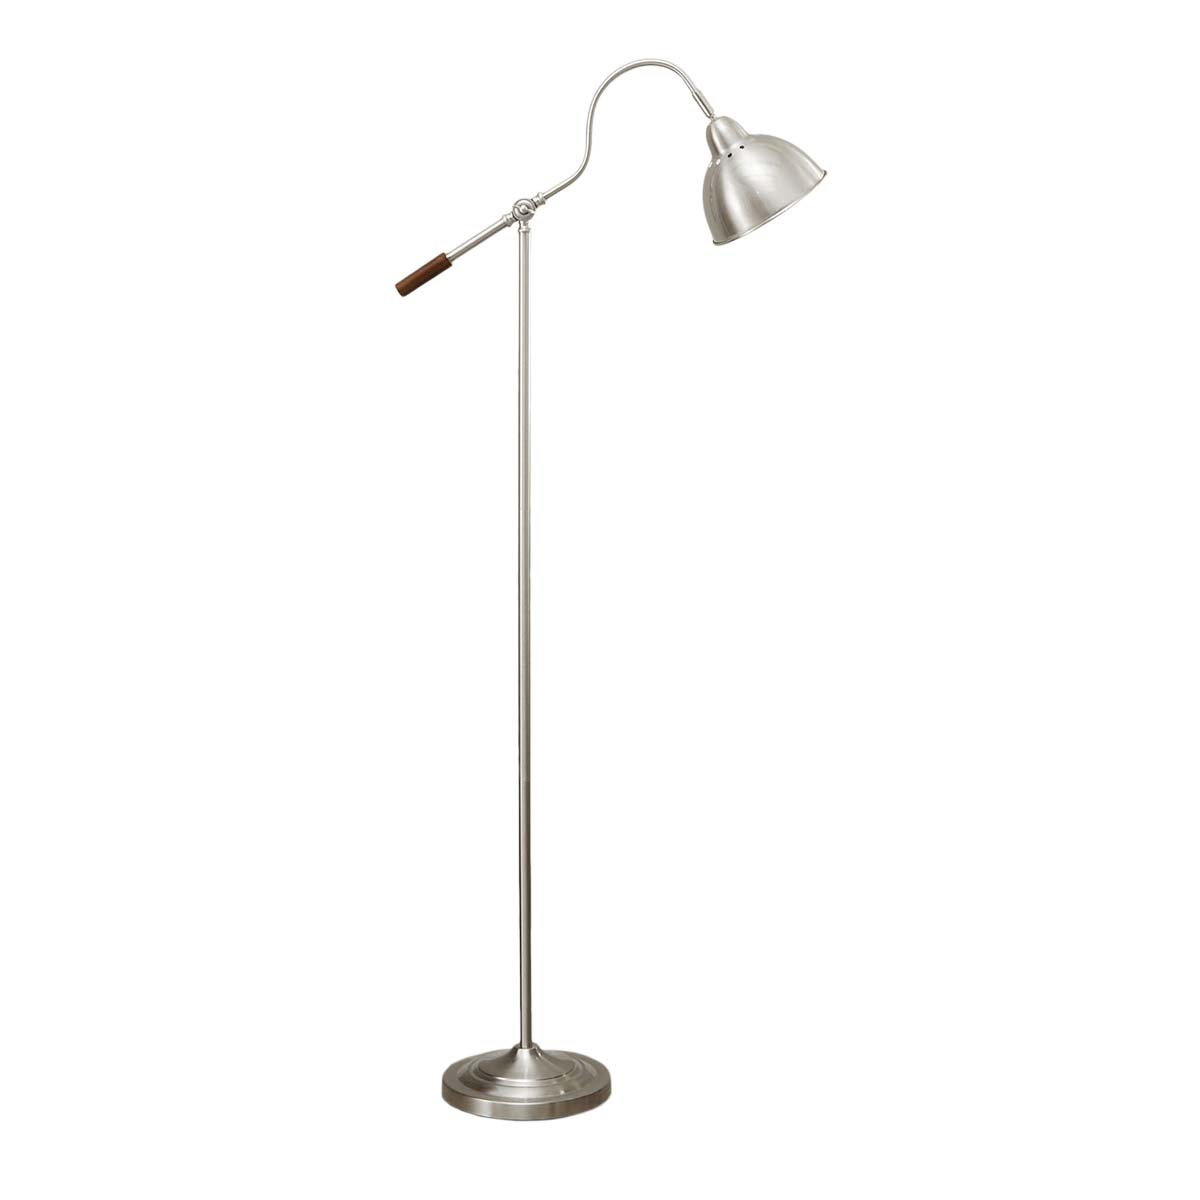 Better Homes and Gardens 60 Inch  Modern Floor Lamp With Adjustable Arm, Silver